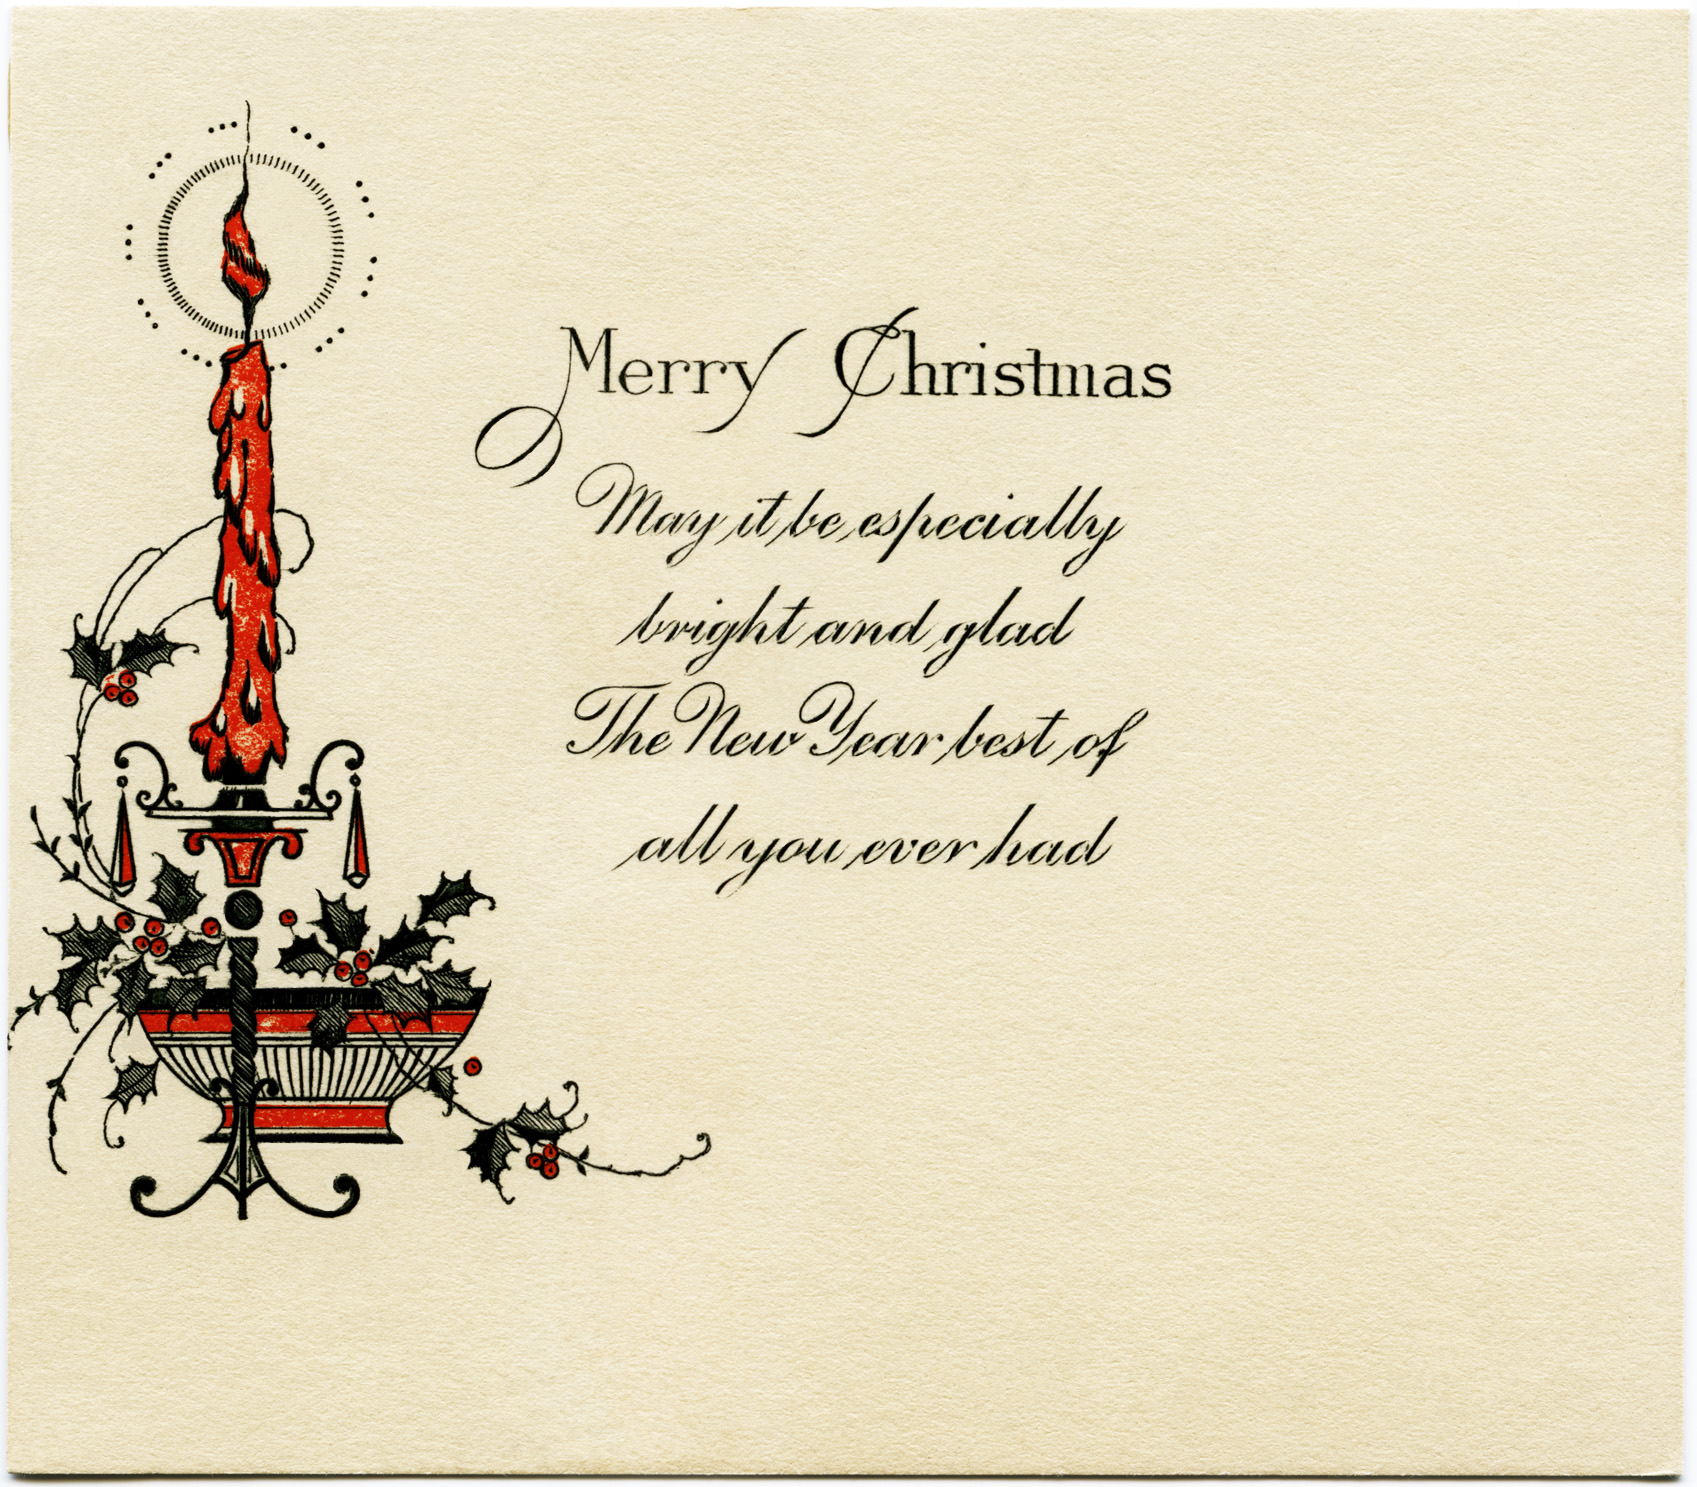 Clipart Free Vintage Christmas Image Old Fashioned Christmas